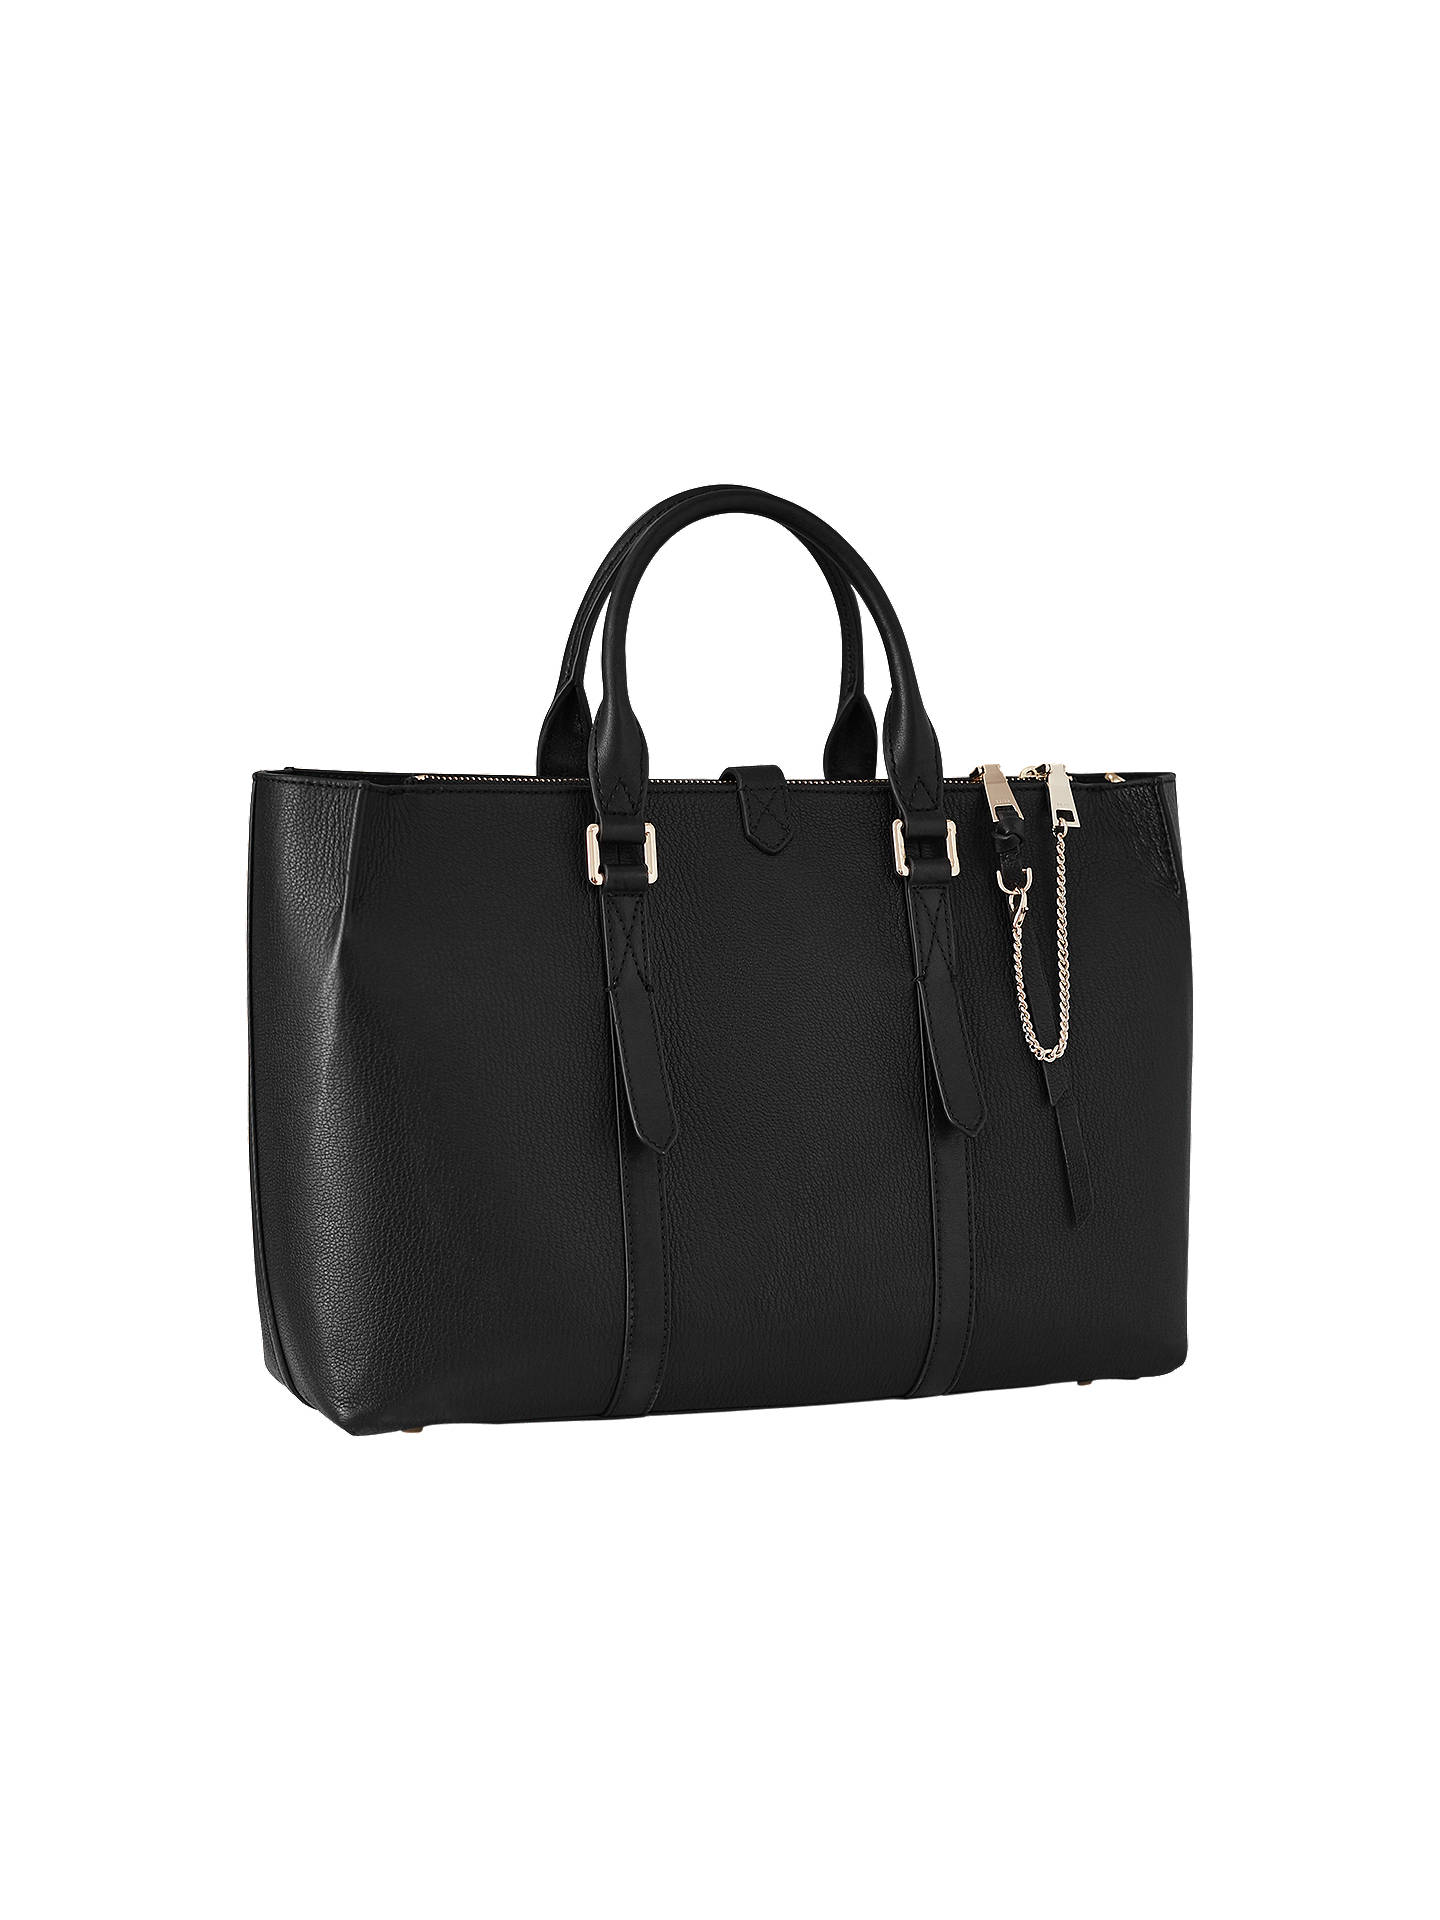 2998334509 Leather Tote Bag Online- Fenix Toulouse Handball